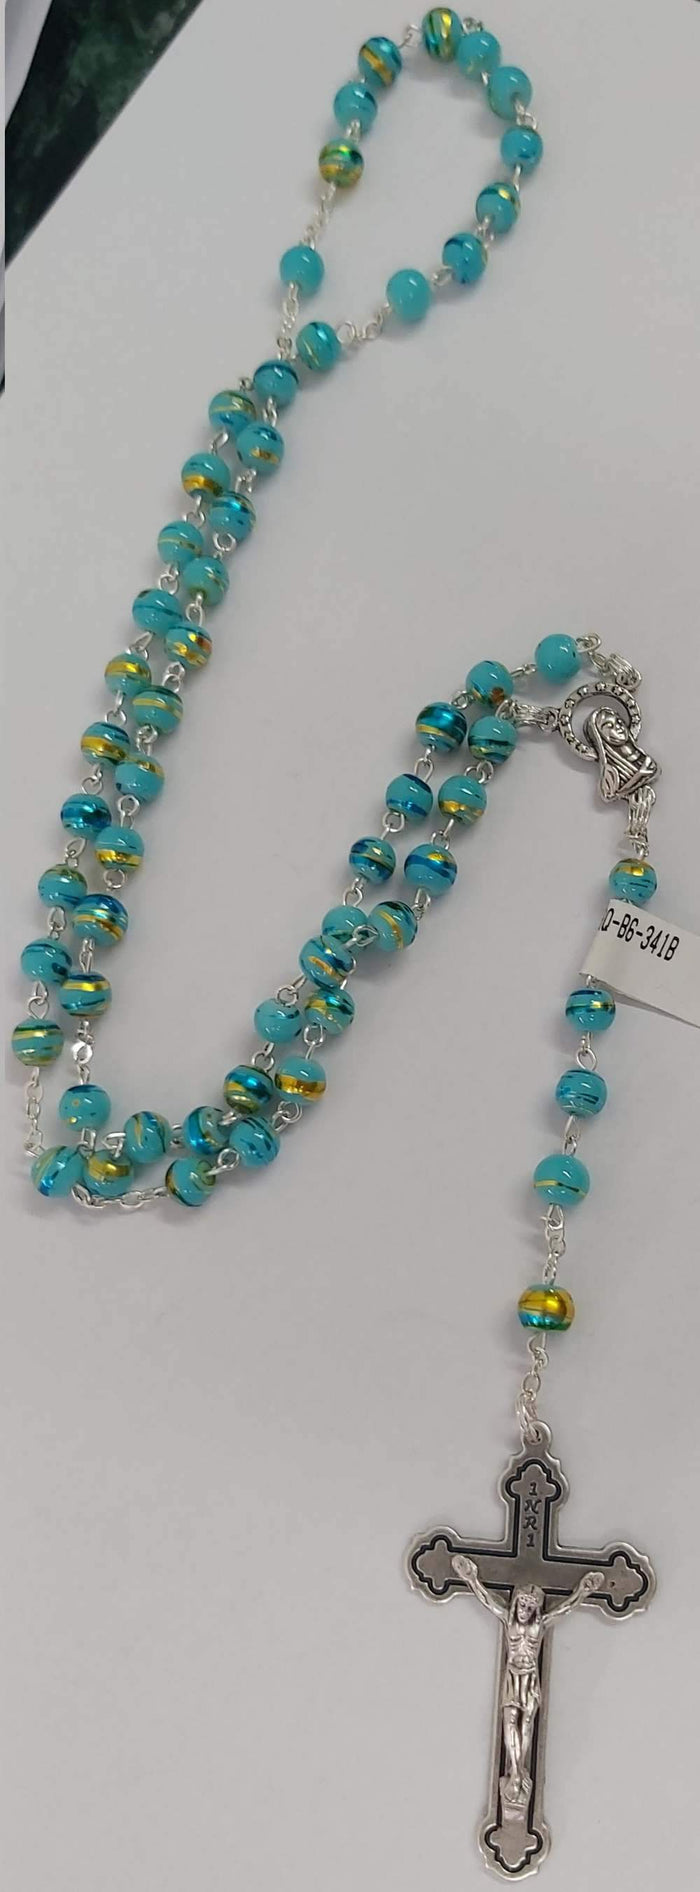 Aqua Rosary Necklace